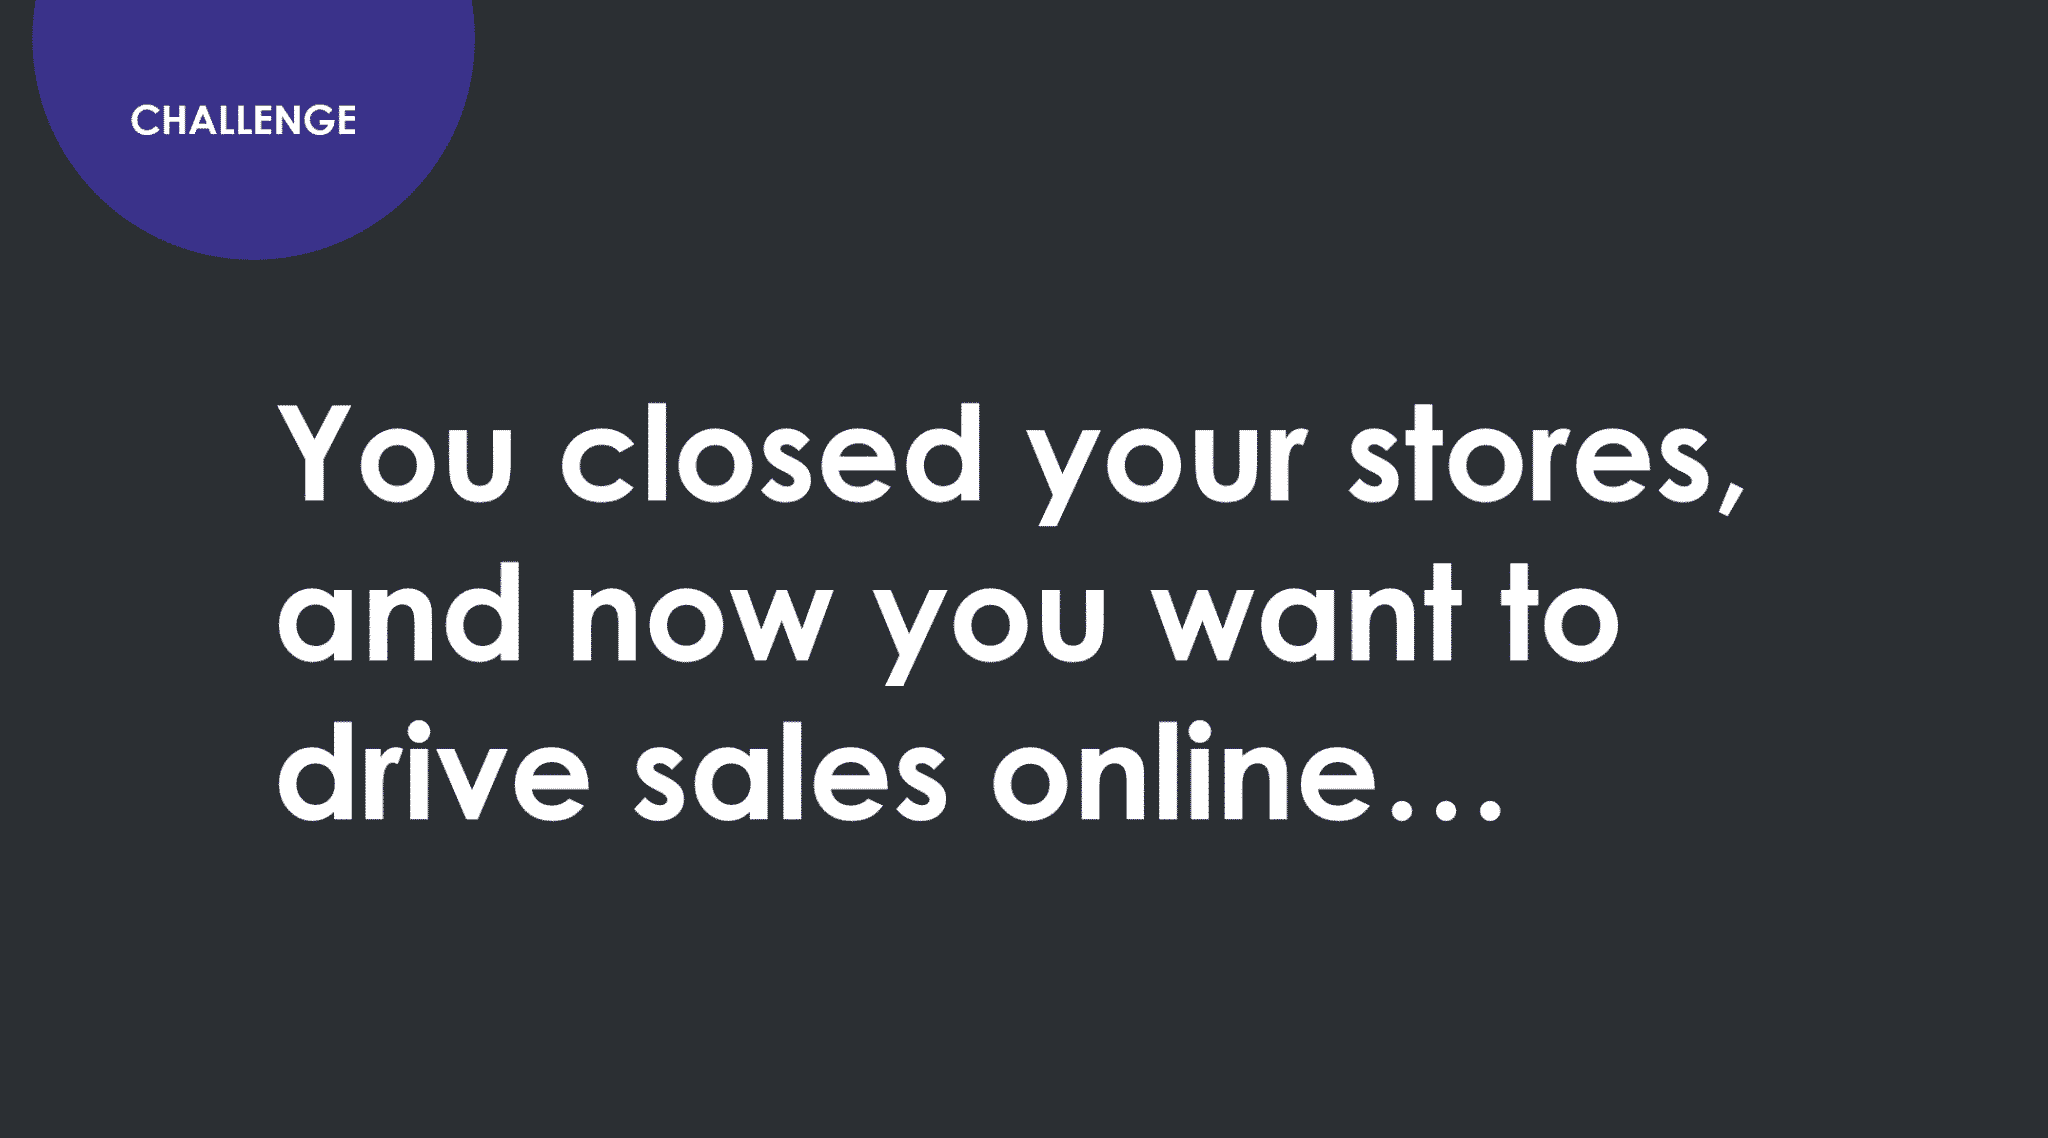 Challenge. You closed your stores and now you want to drive sales online.